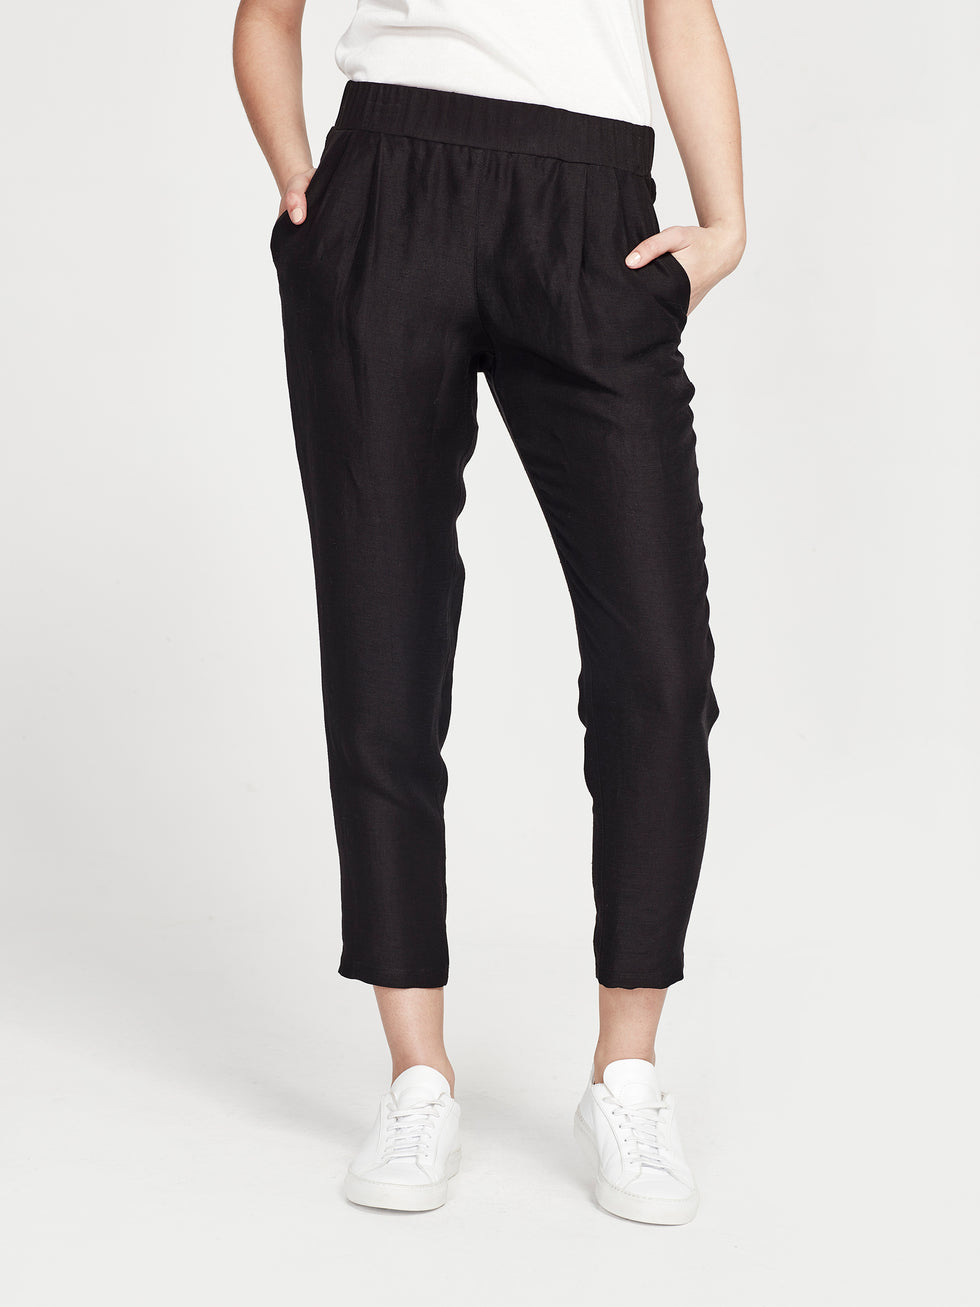 Mal Pant (Triacetate Linen) Black